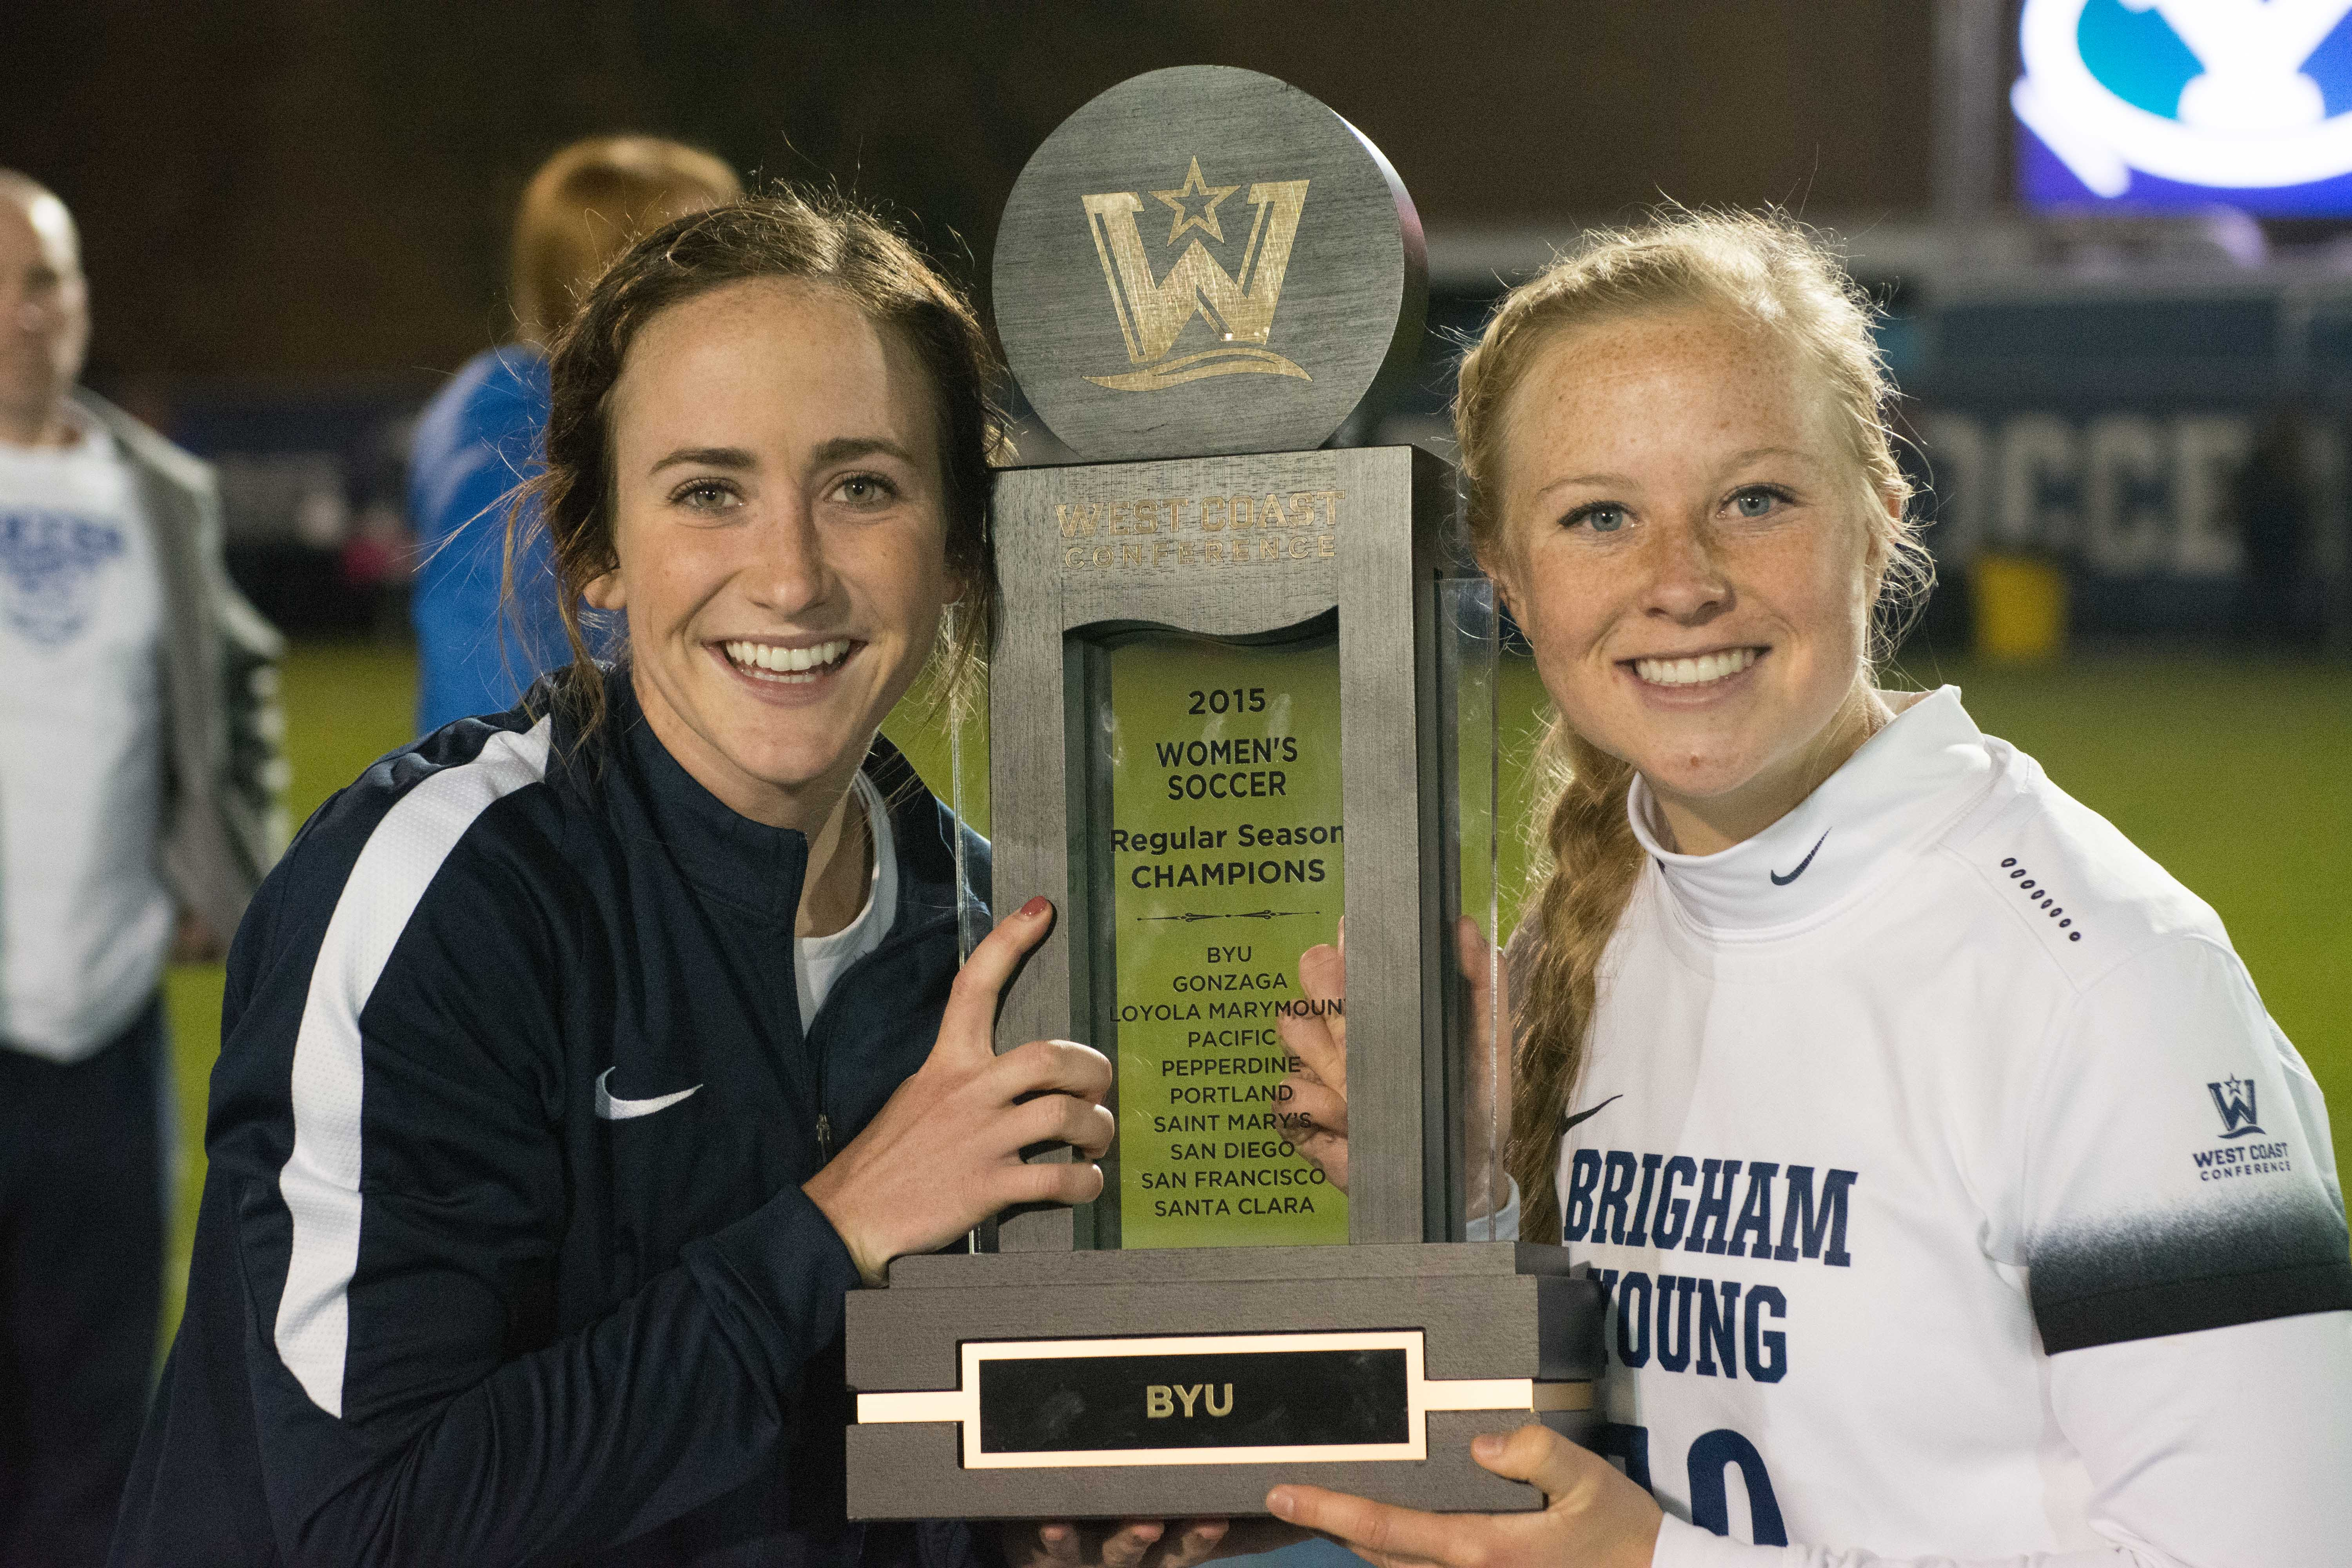 Michele Vasconcelos and Bizzy Bowen pose with the West Coast Conference championship. Vasconcelos and Bowen are best friends. (Ryan Turner)